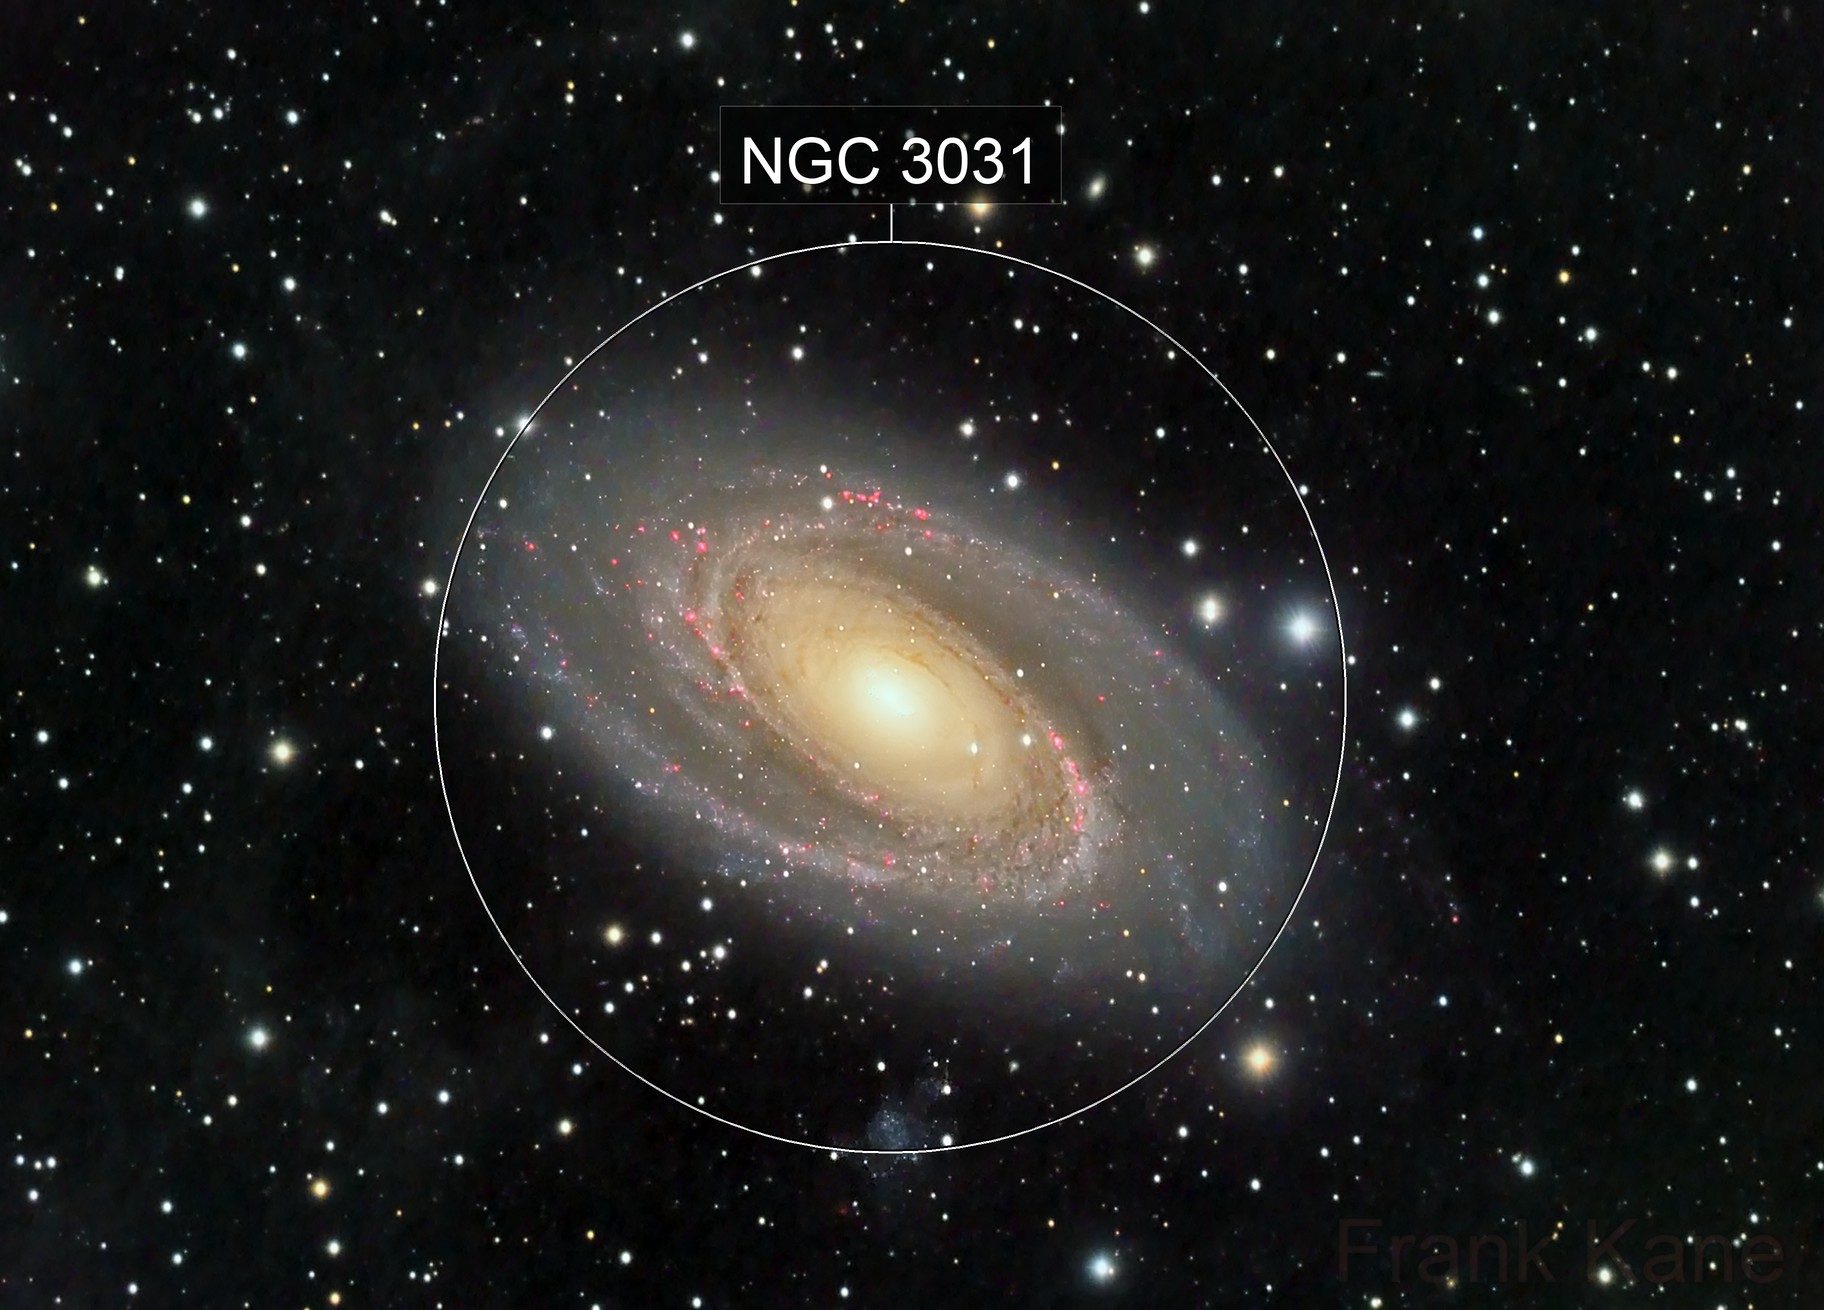 Another year, another M81 image